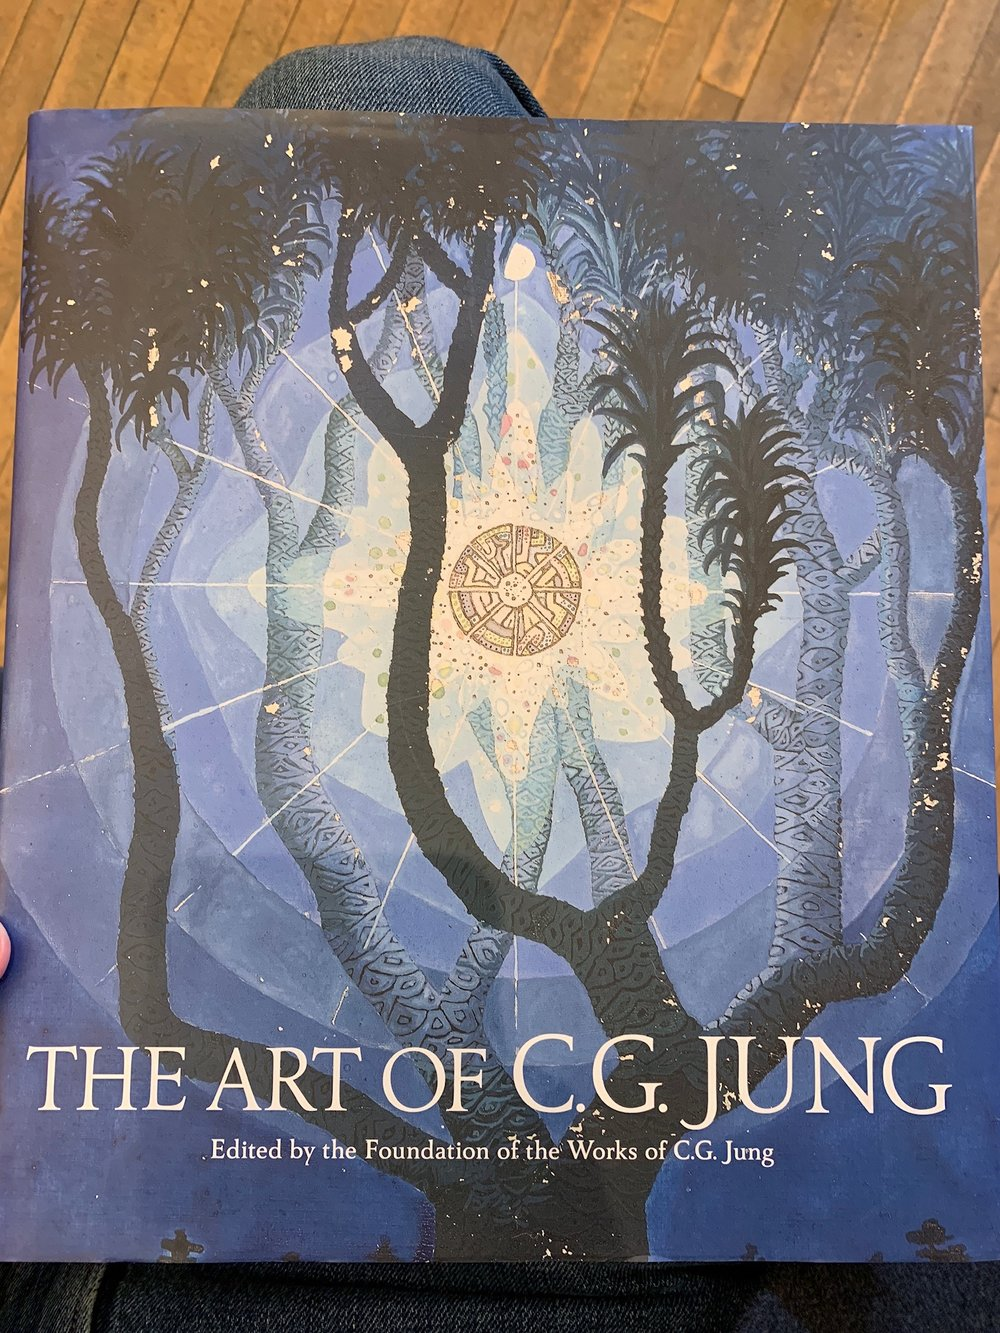 Edited by The Foundation of the Works of C.G. Jung. W.W. Norton & Company, 2019. Including 254 illustrations.